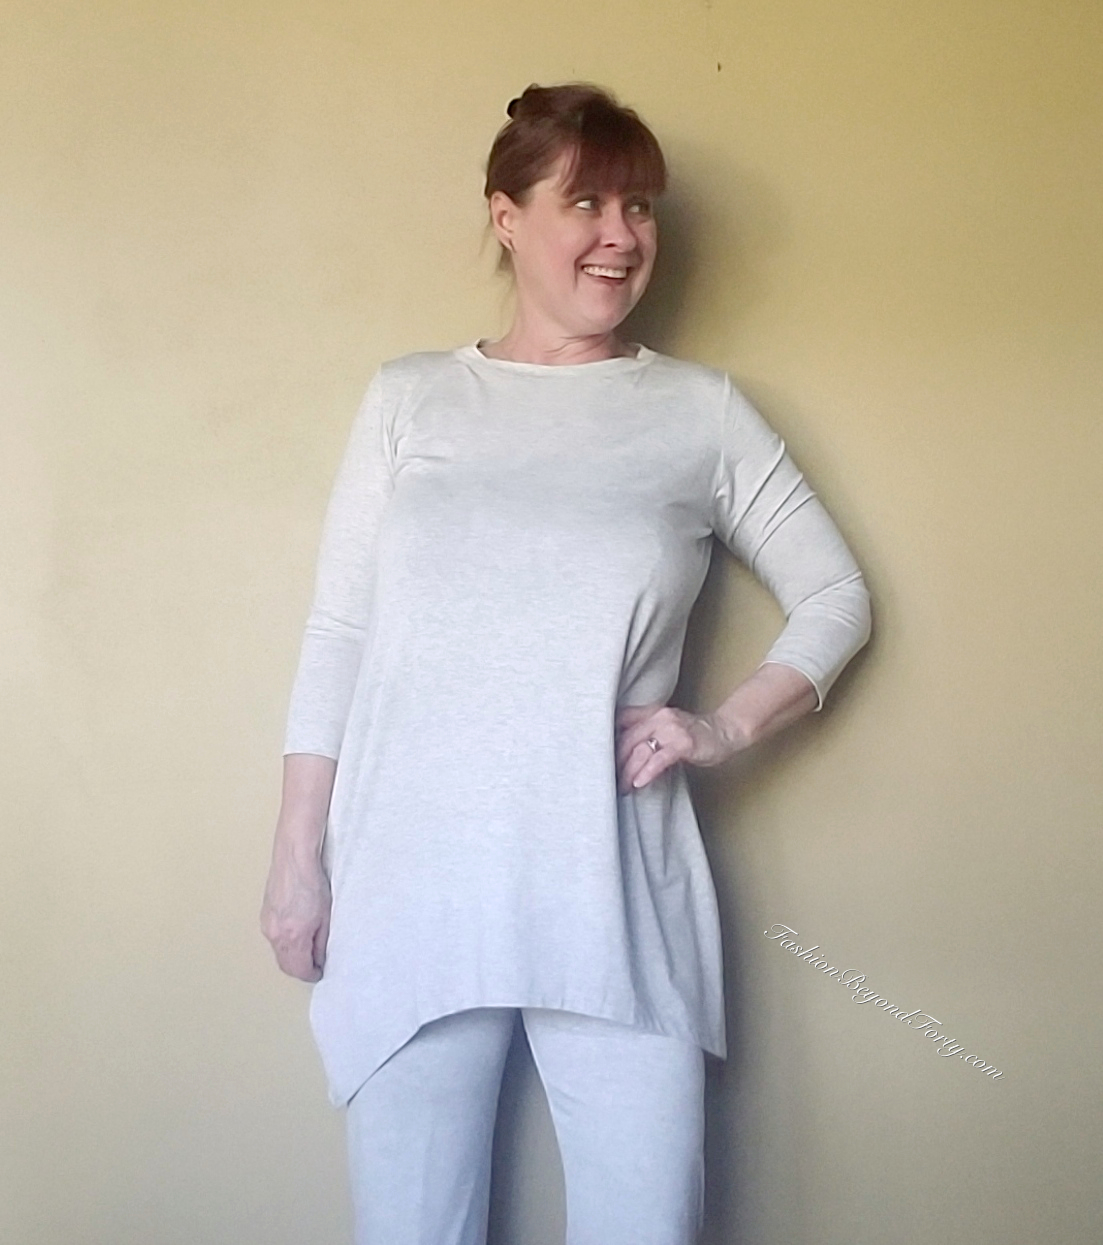 Fashion Focus: PJ's, Leisure Suit, Call It What You Want But I Found My New Best Friend! Featuring Covered Perfectly